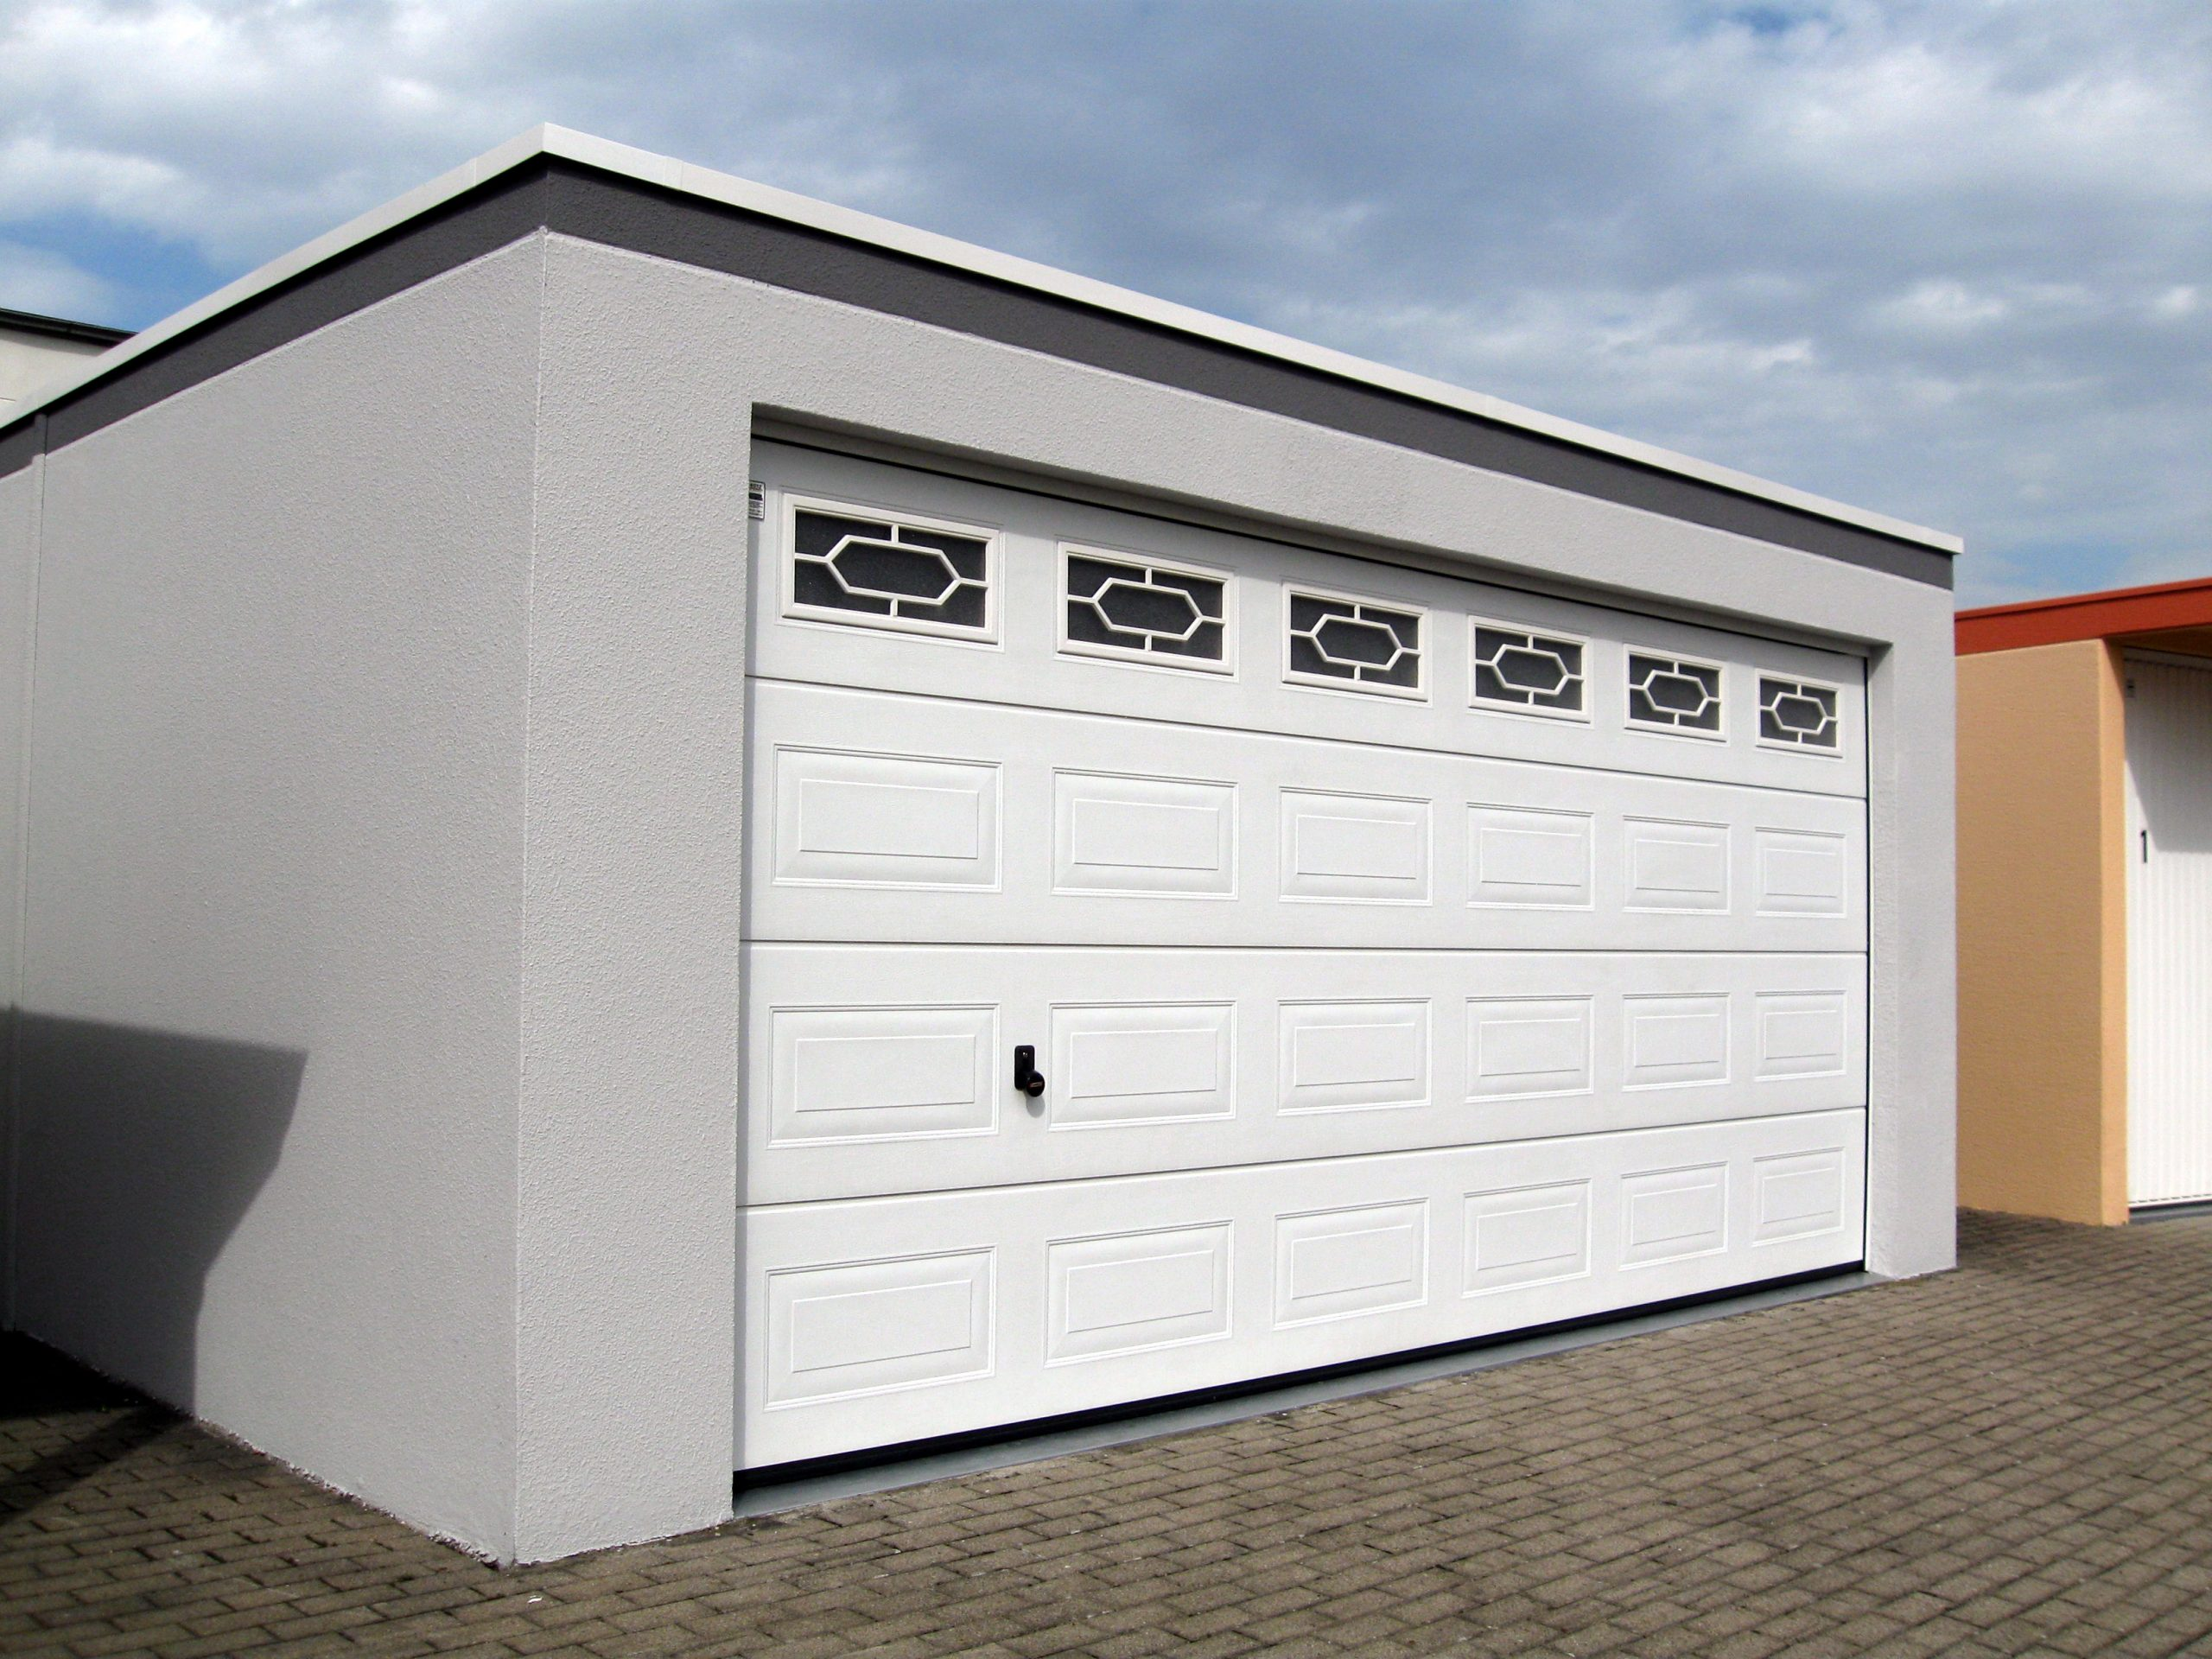 Garage Door Repair Encino: Analysis about Damages and Services